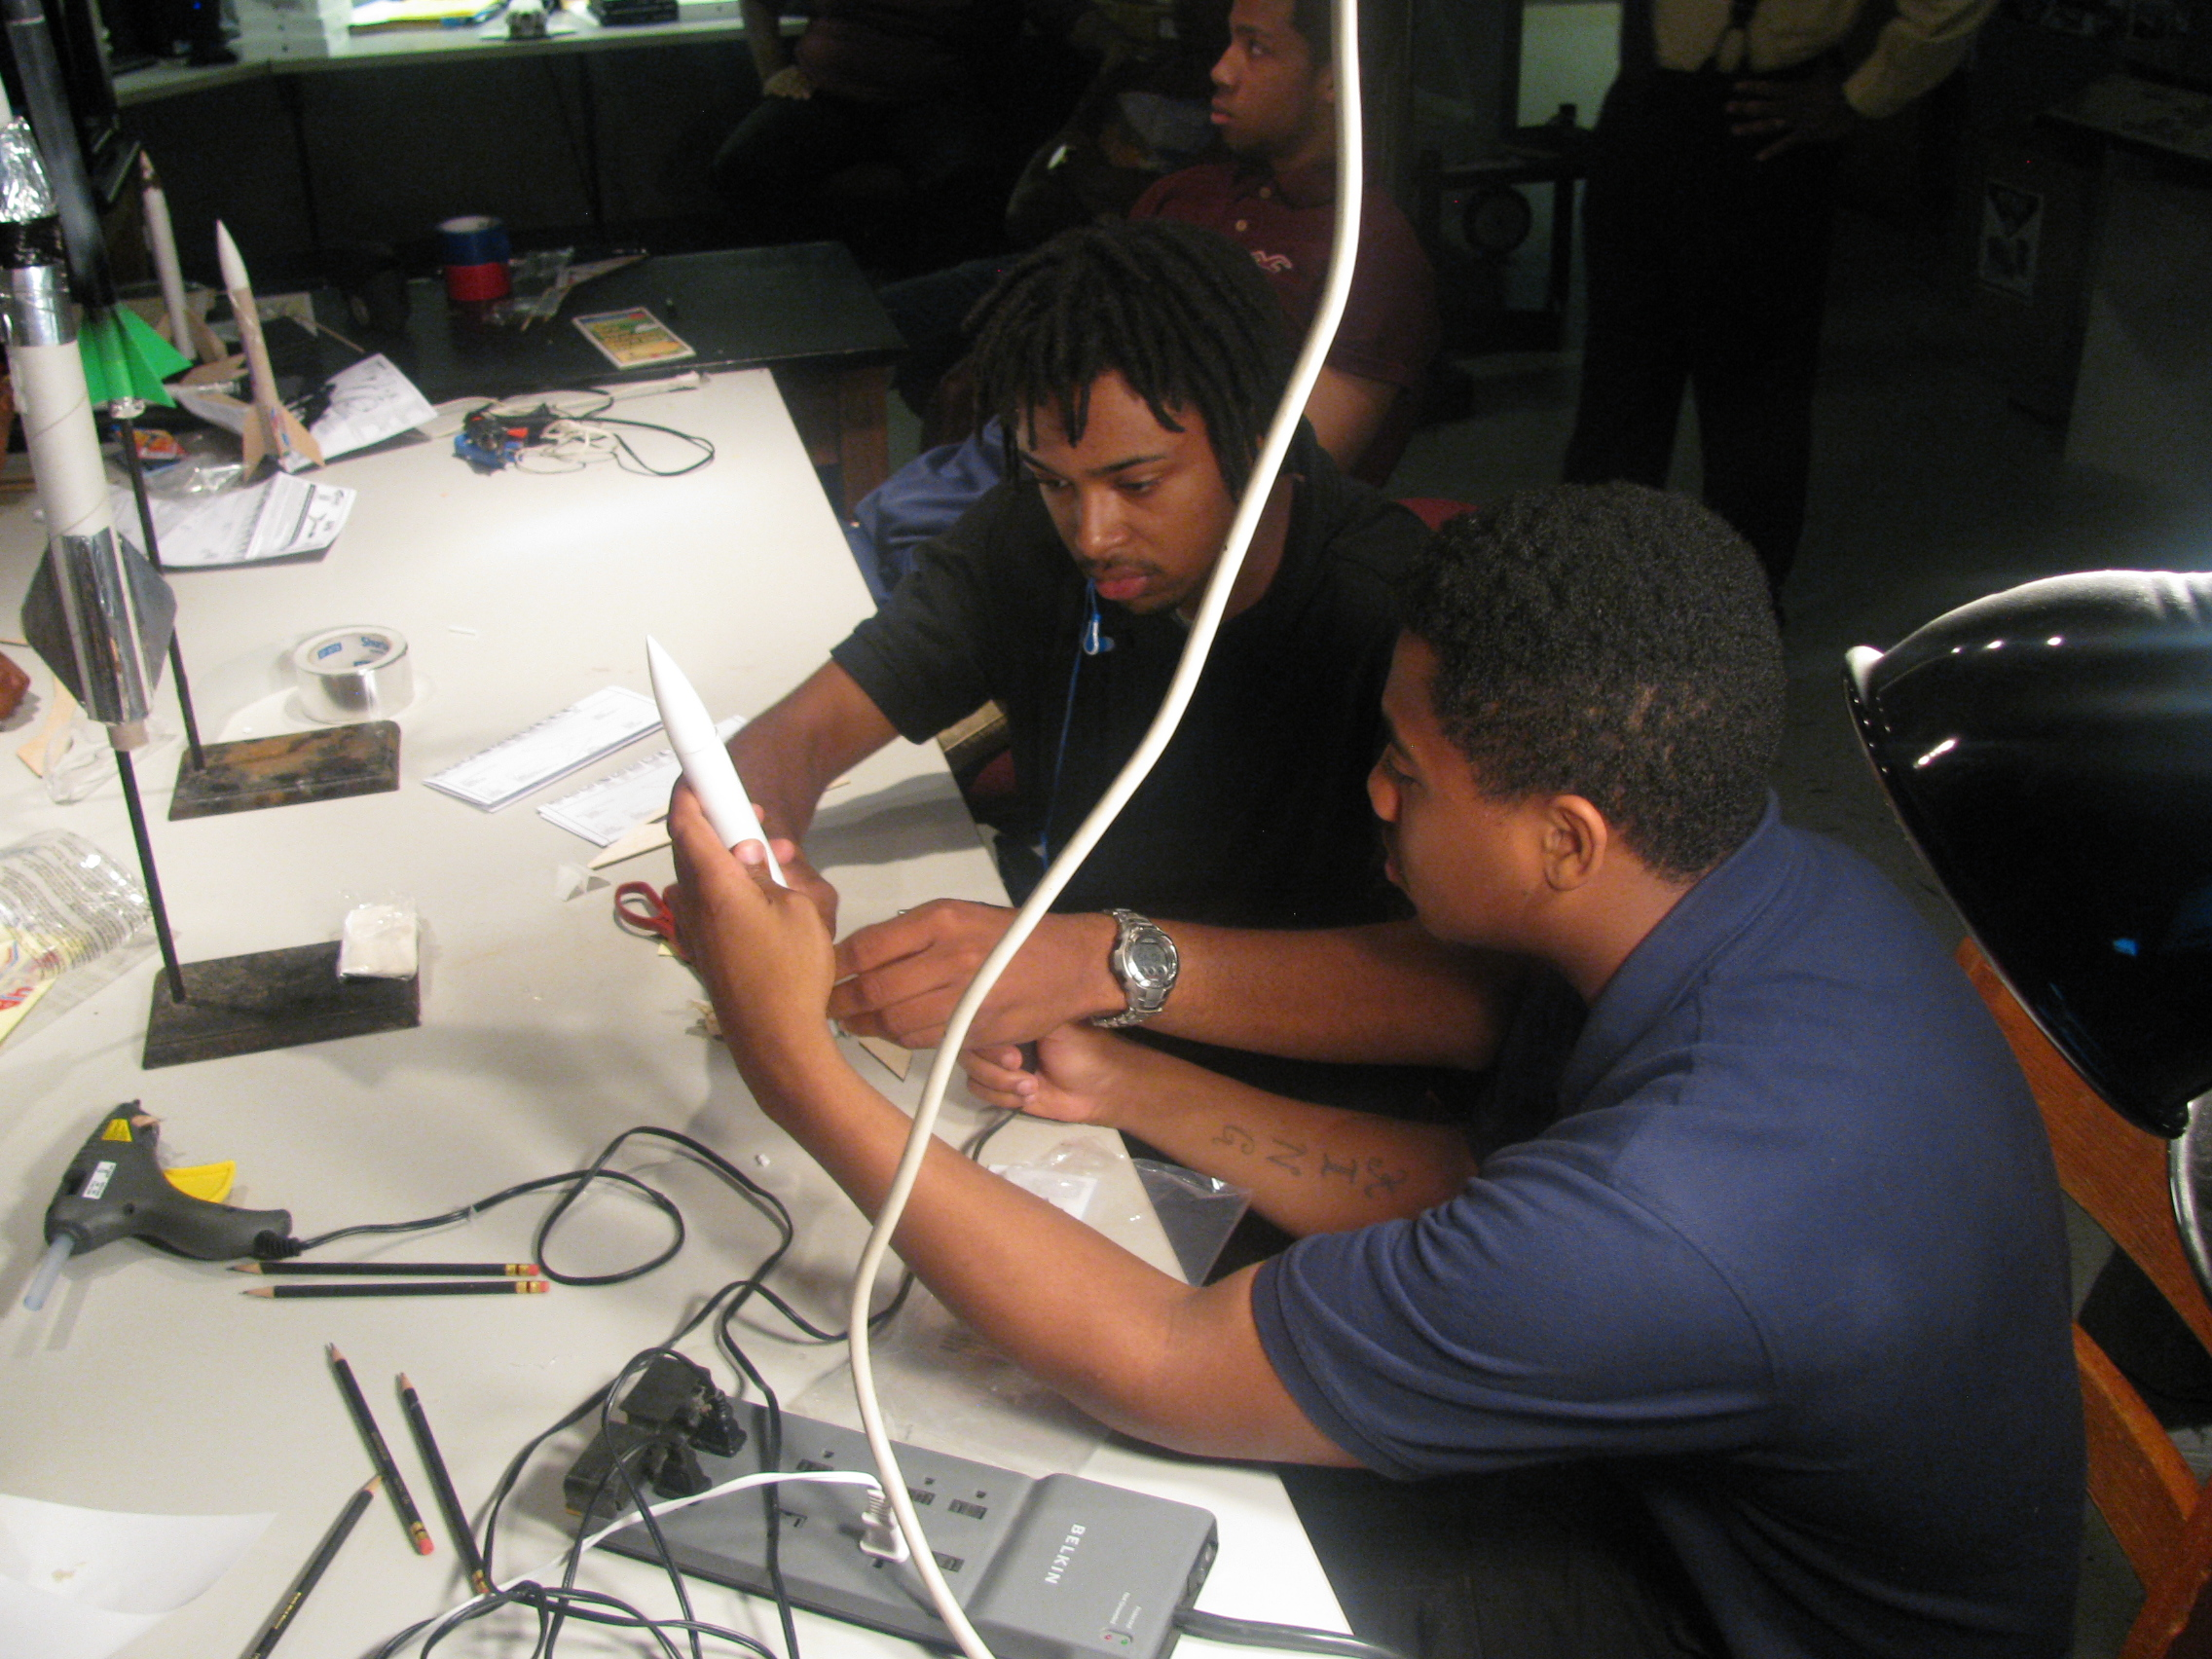 High school students working on a project